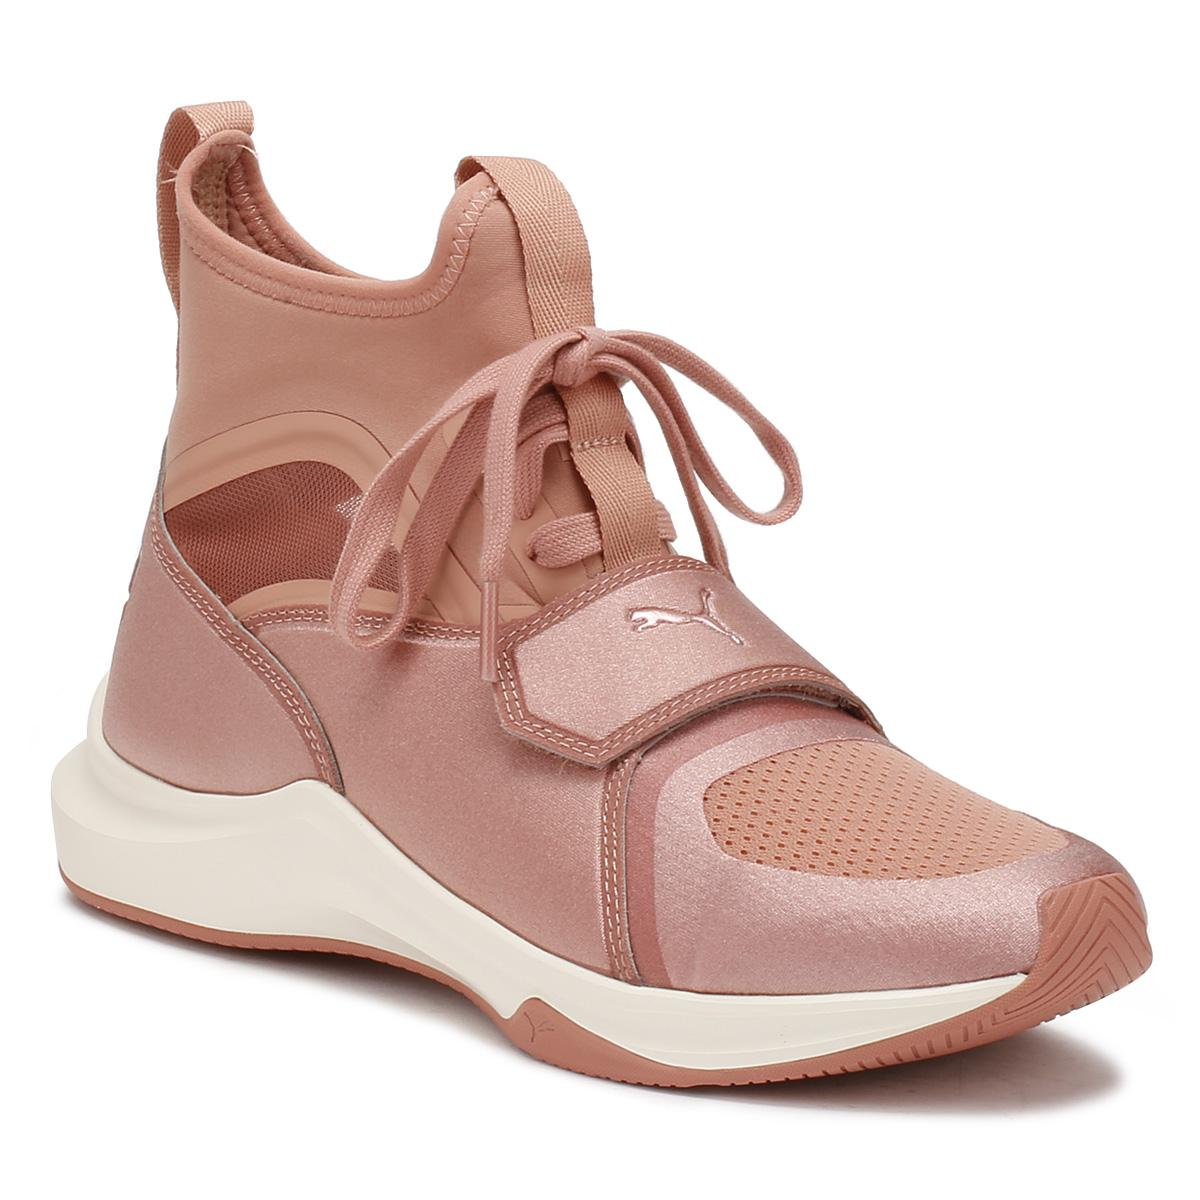 Lyst - PUMA Womens Selena Gomez Pink Phenom Trainers Women s Shoes ... 32c9b9b35